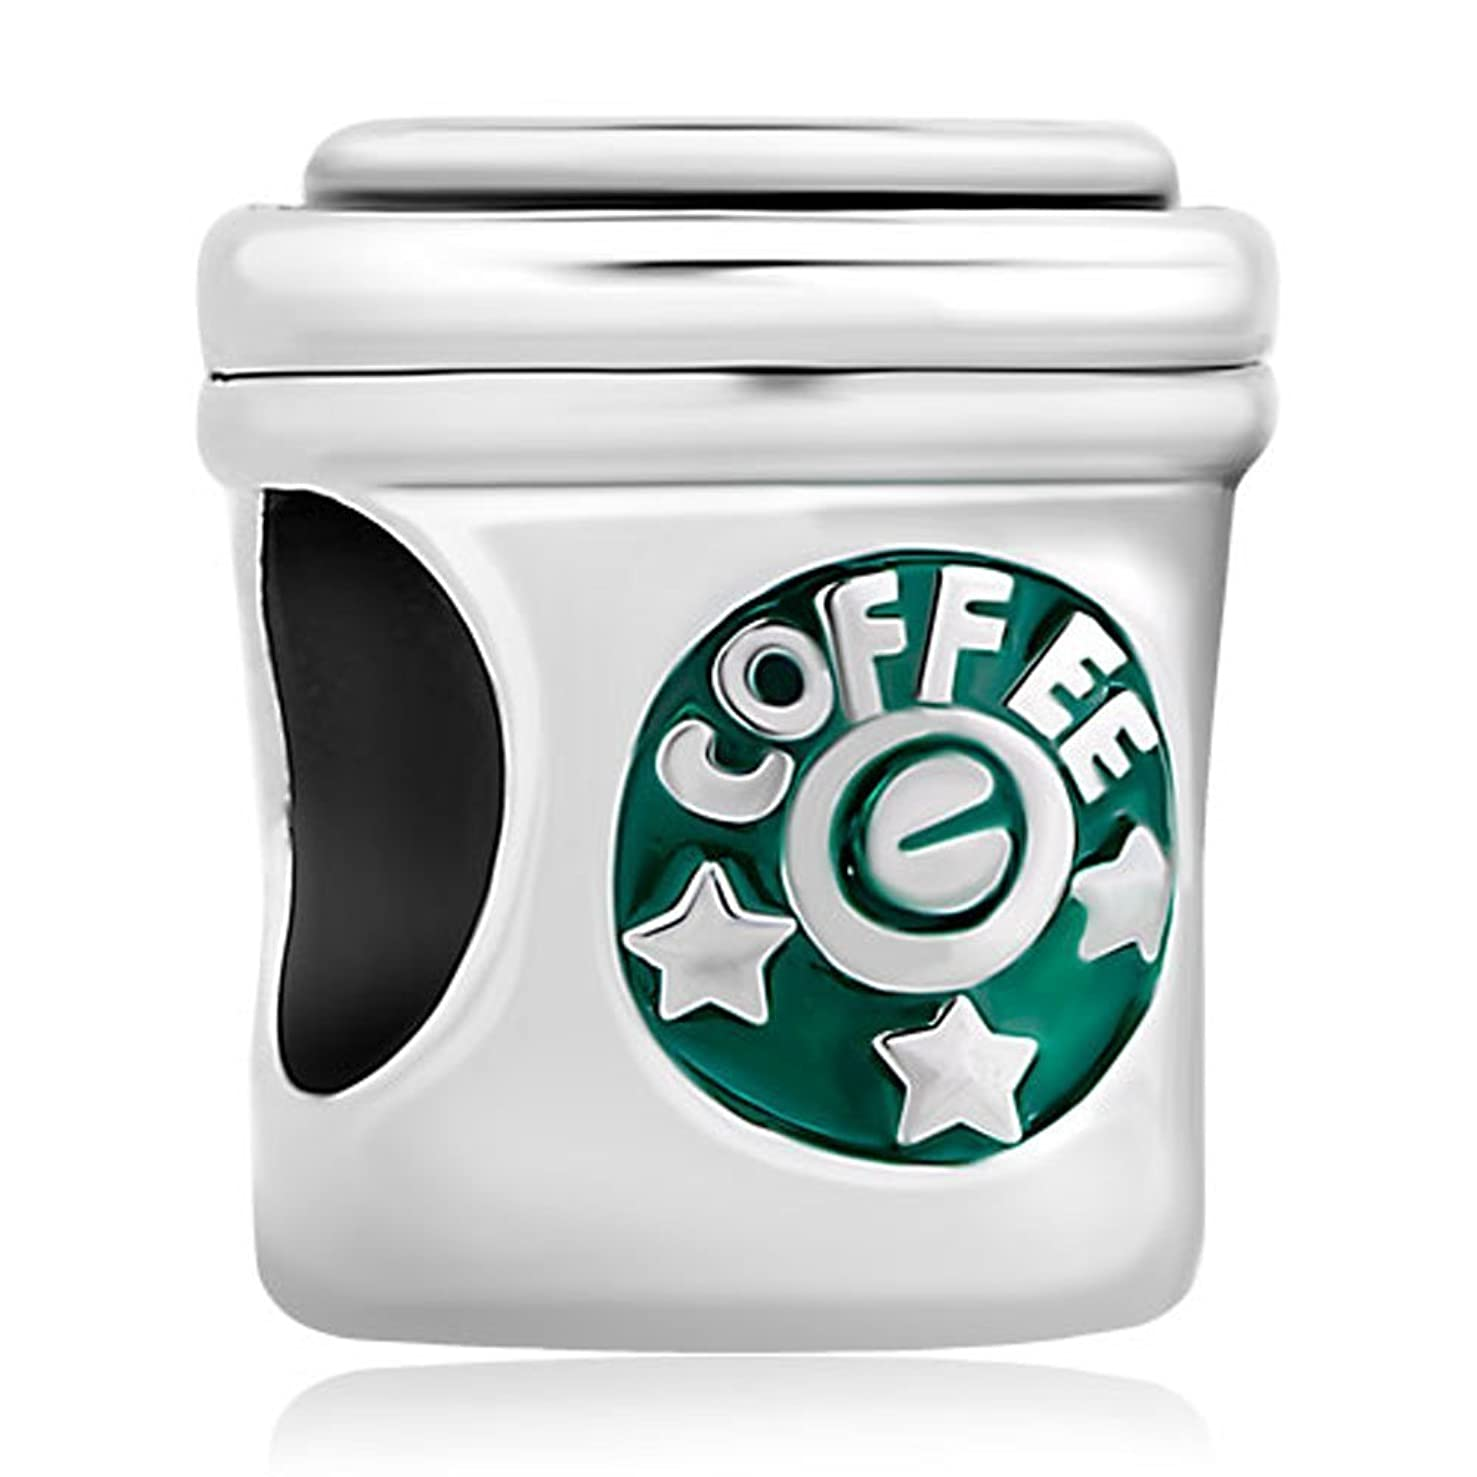 Creationtop Golded Butterfly Green Birthstone Snowflake Stars Coffee Cup Love Cafe Bead for European Bracelets